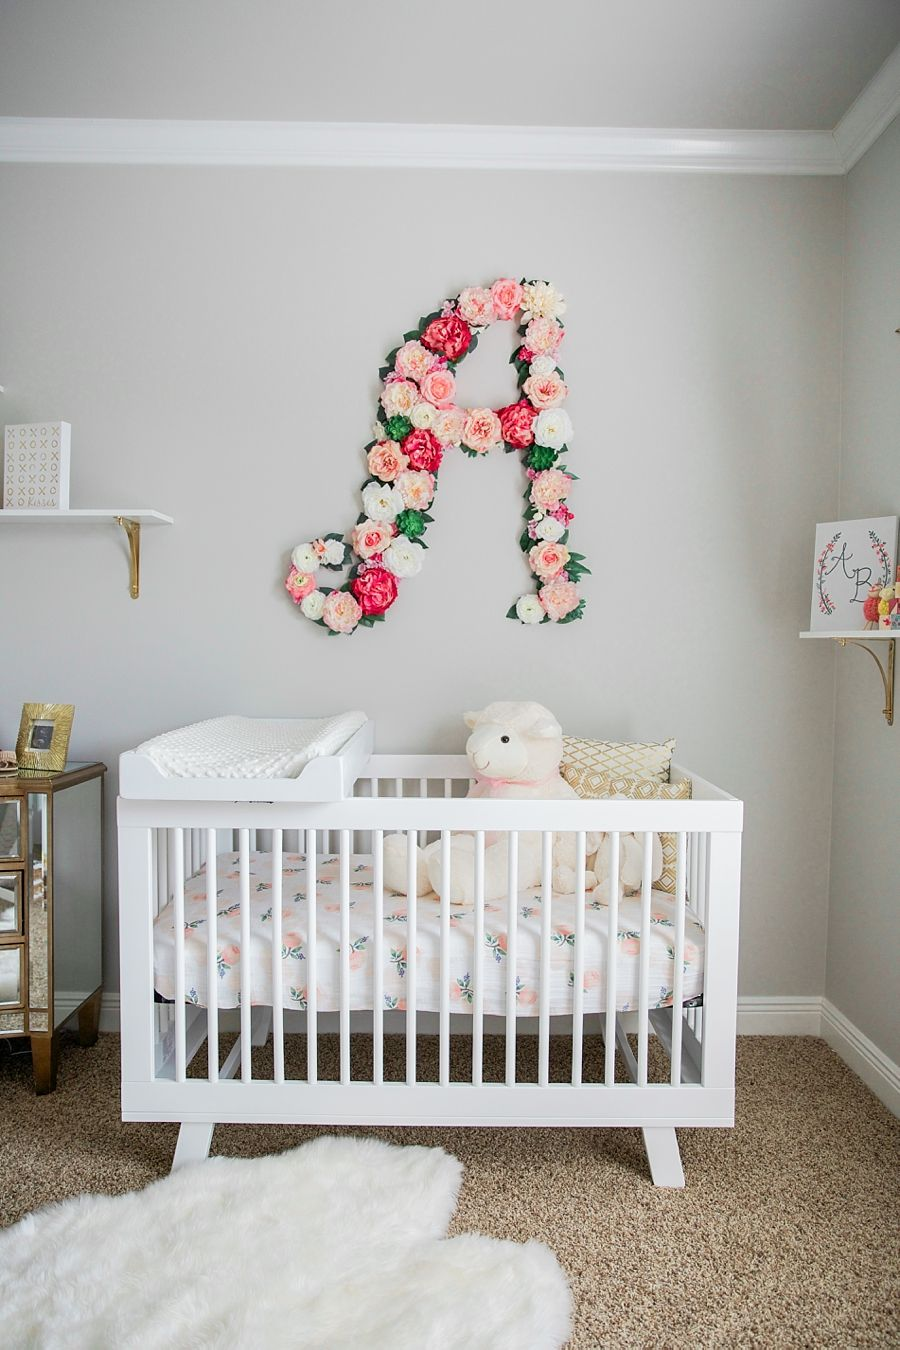 Baby girl nursery with floral wall shop rent consign for Easy diy room decor pinterest